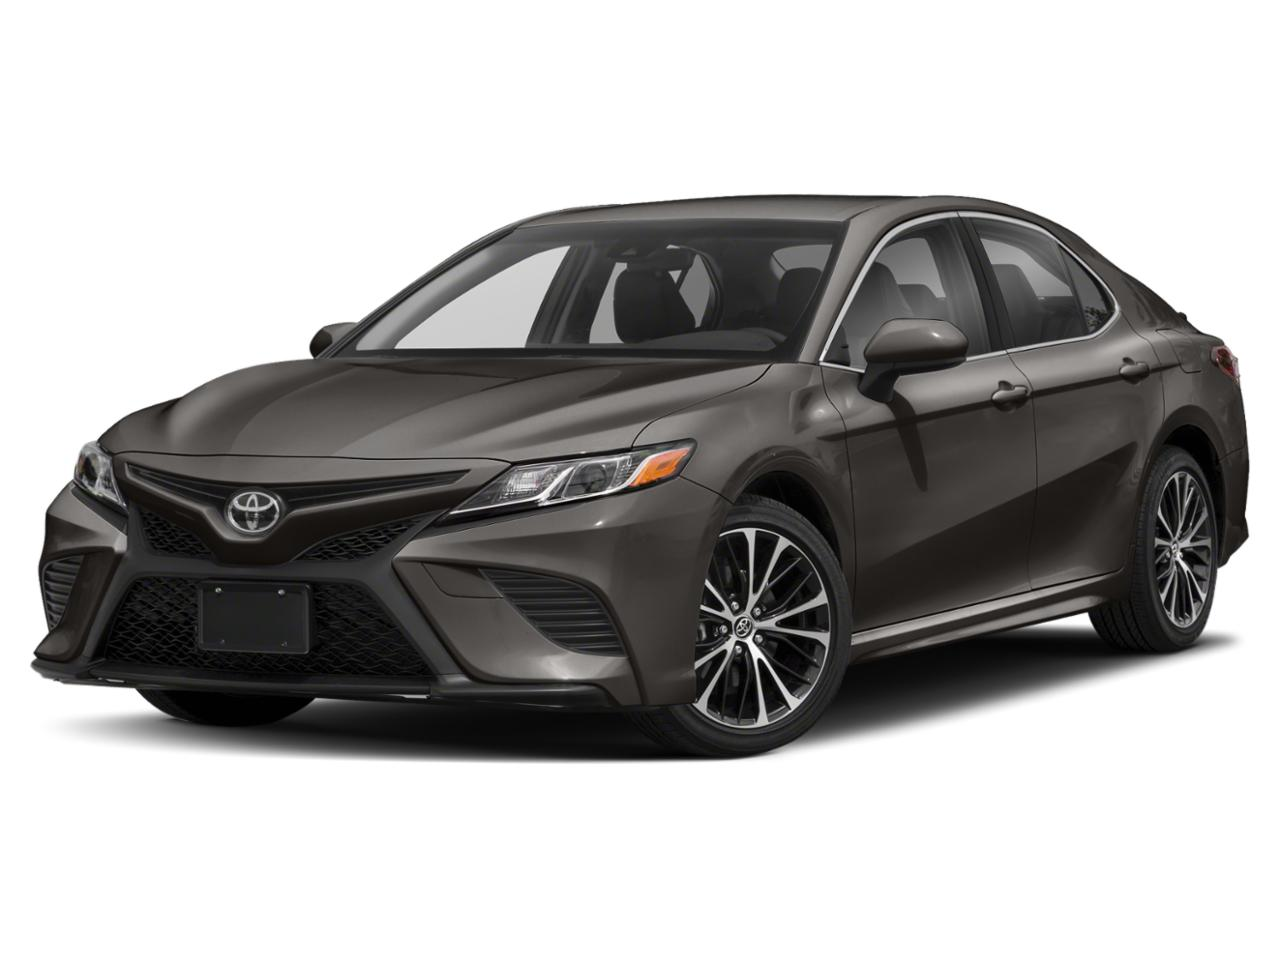 2020 Toyota Camry Vehicle Photo in Prince Frederick, MD 20678